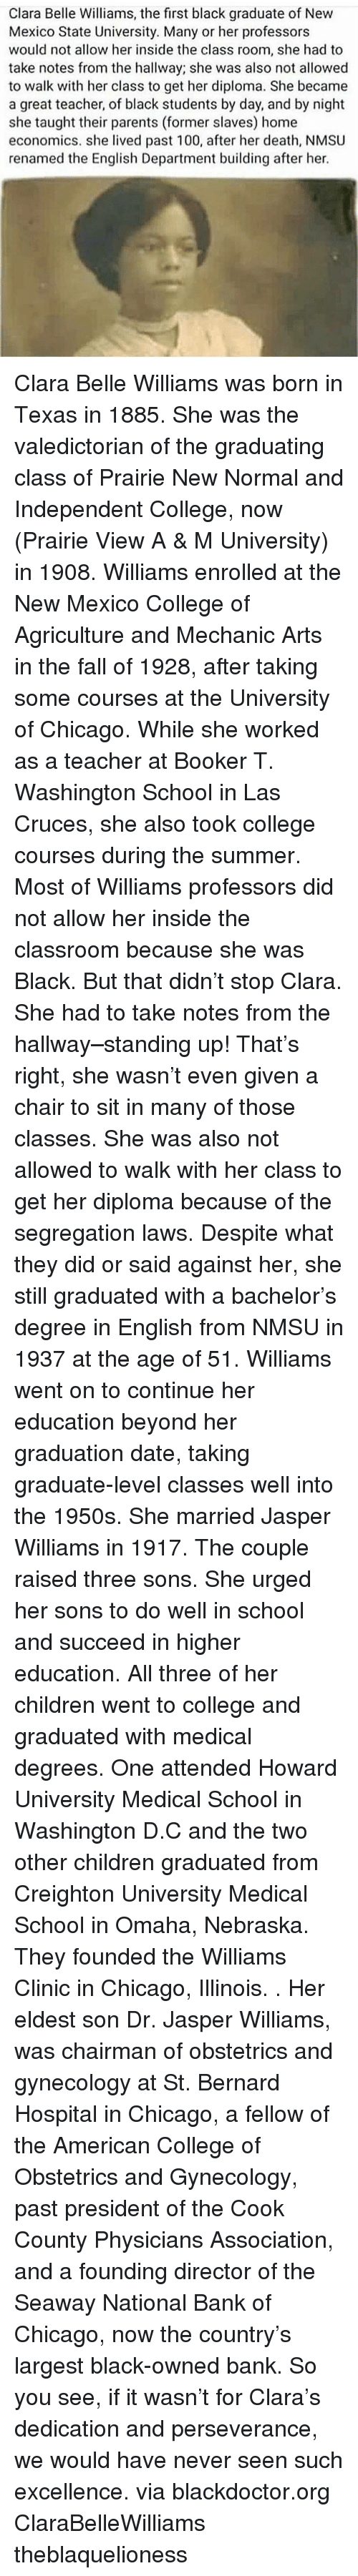 Anaconda, At-St, and Chicago: Clara Belle Williams, the first black graduate of New  Mexico State University. Many or her professors  would not allow her inside the class room, she had to  take notes from the hallway; she was also not allowed  to walk with her class to get her diploma. She became  a great teacher, of black students by day, and by night  she taught their parents (former slaves) home  economics. she lived past 100, after her death, NMSU  renamed the English Department building after her. Clara Belle Williams was born in Texas in 1885. She was the valedictorian of the graduating class of Prairie New Normal and Independent College, now (Prairie View A & M University) in 1908. Williams enrolled at the New Mexico College of Agriculture and Mechanic Arts in the fall of 1928, after taking some courses at the University of Chicago. While she worked as a teacher at Booker T. Washington School in Las Cruces, she also took college courses during the summer. Most of Williams professors did not allow her inside the classroom because she was Black. But that didn't stop Clara. She had to take notes from the hallway–standing up! That's right, she wasn't even given a chair to sit in many of those classes. She was also not allowed to walk with her class to get her diploma because of the segregation laws. Despite what they did or said against her, she still graduated with a bachelor's degree in English from NMSU in 1937 at the age of 51. Williams went on to continue her education beyond her graduation date, taking graduate-level classes well into the 1950s. She married Jasper Williams in 1917. The couple raised three sons. She urged her sons to do well in school and succeed in higher education. All three of her children went to college and graduated with medical degrees. One attended Howard University Medical School in Washington D.C and the two other children graduated from Creighton University Medical School in Omaha, Nebraska. They founded the Williams Clinic in Chi